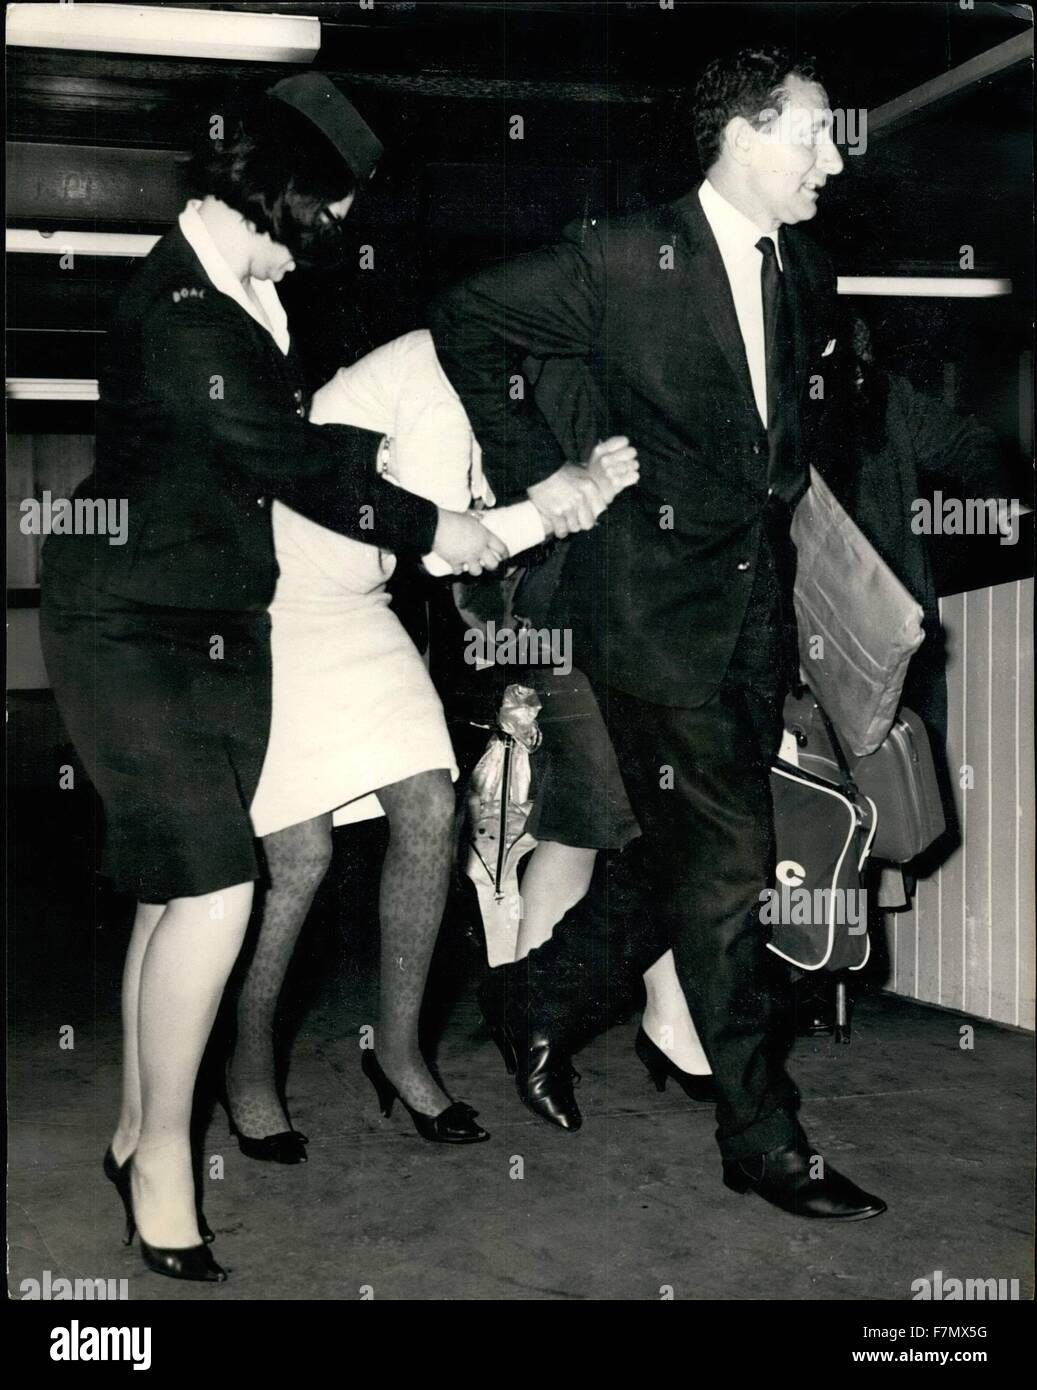 1958 Baby Killing Woman Arrives From Sydney 23 Year Old Mrs Pamela Lois Lord Arrived At London Airport Under Police Escort From Sydney